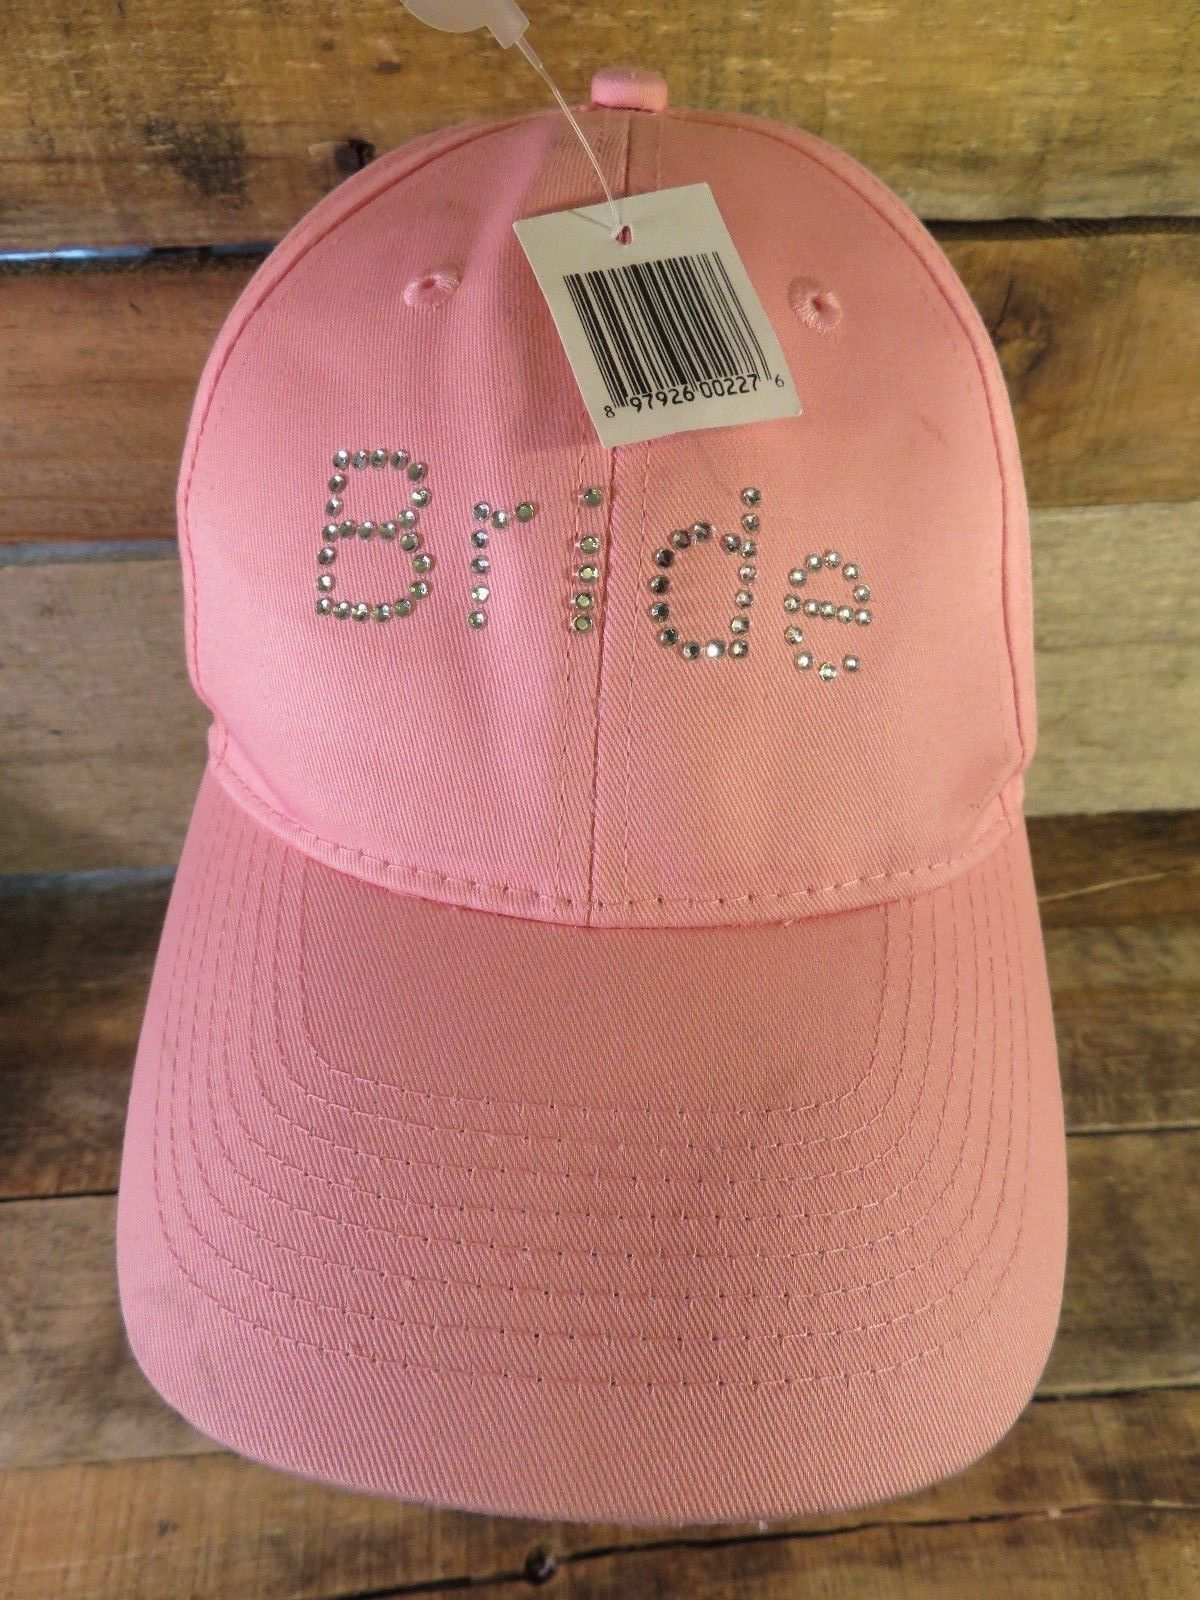 Primary image for BRIDE Pink Beaded Adjustable Adult Hat Cap